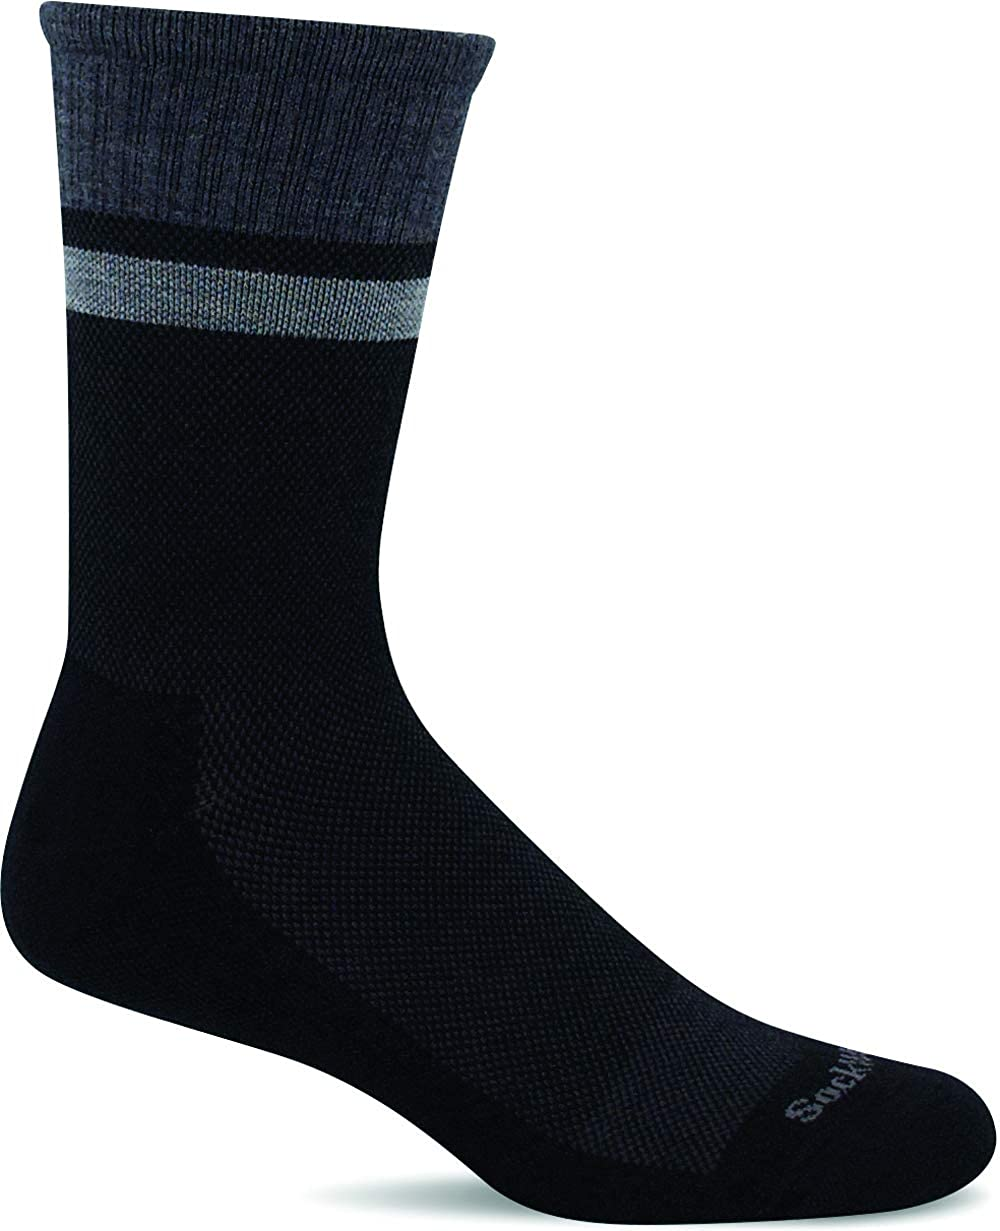 Sockwell Men's Foothold Crew Moderate Graduated Compression Sock in Black from the side